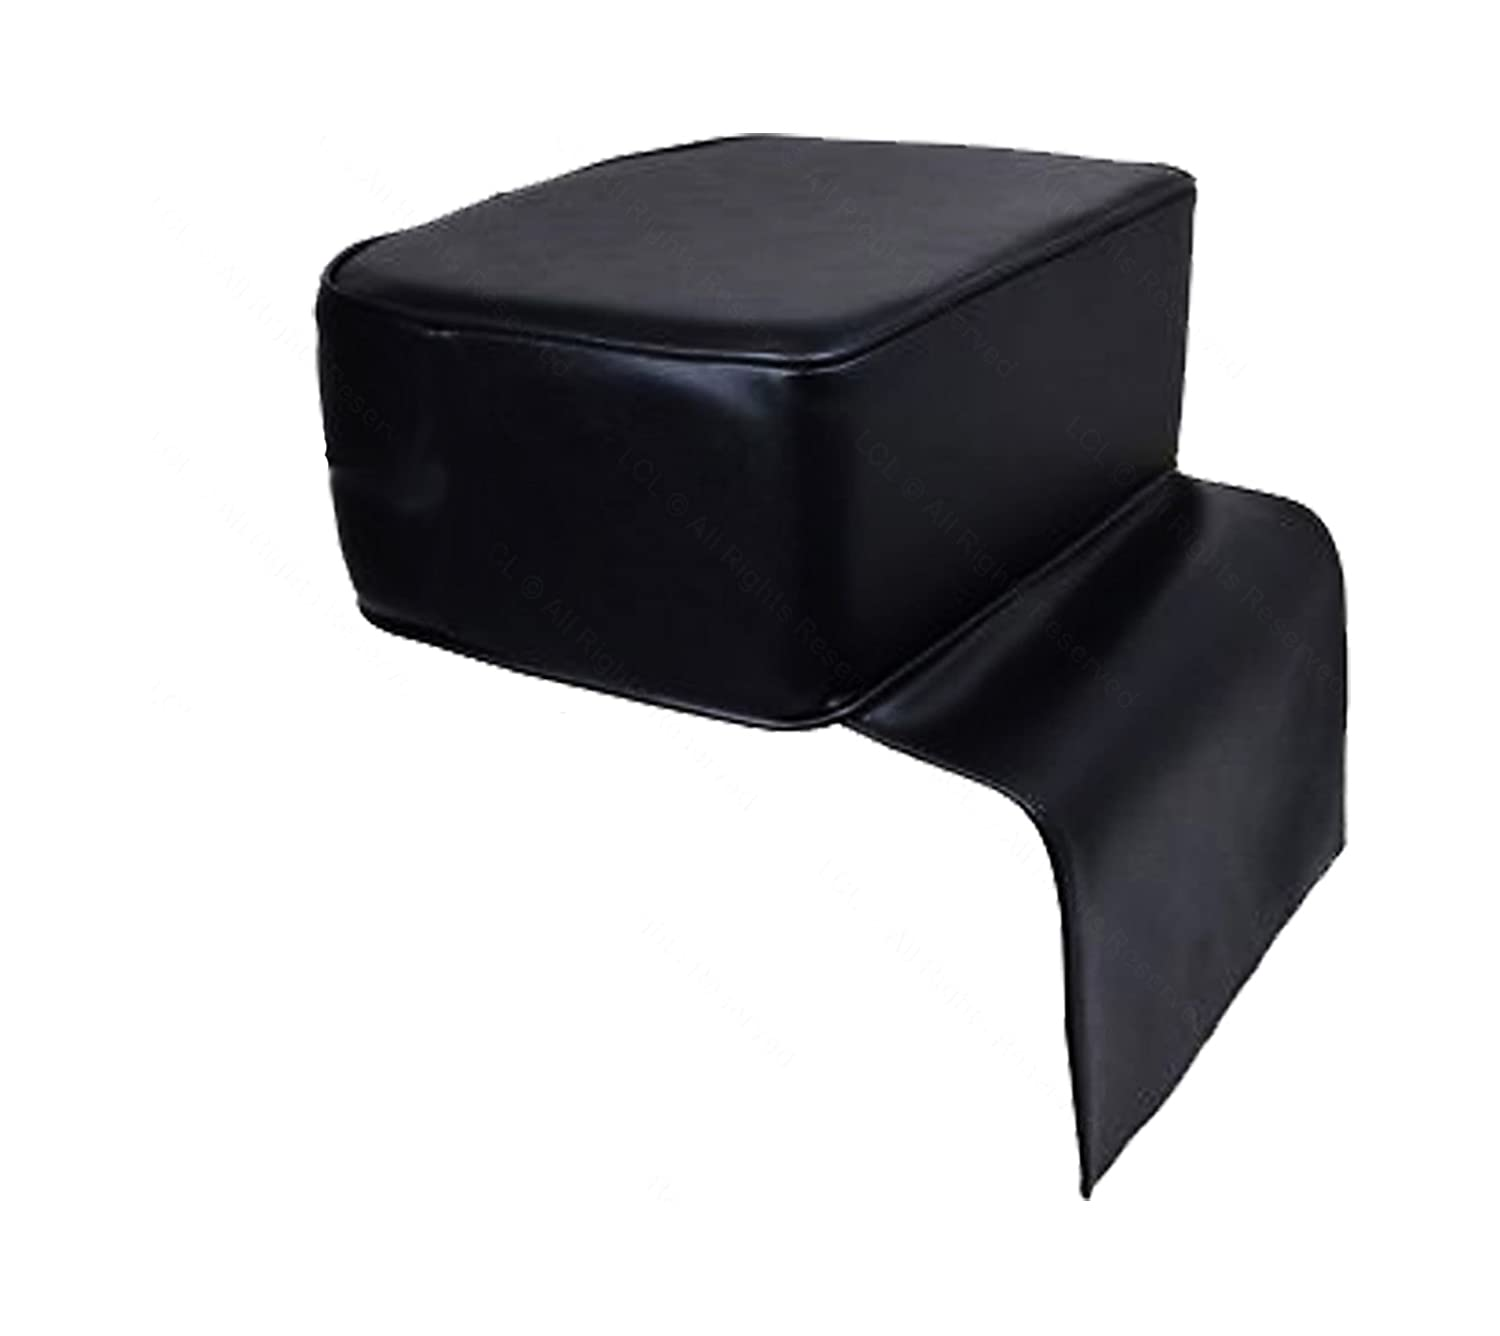 LCL Beauty Childrens Salon Chair Booster Seat